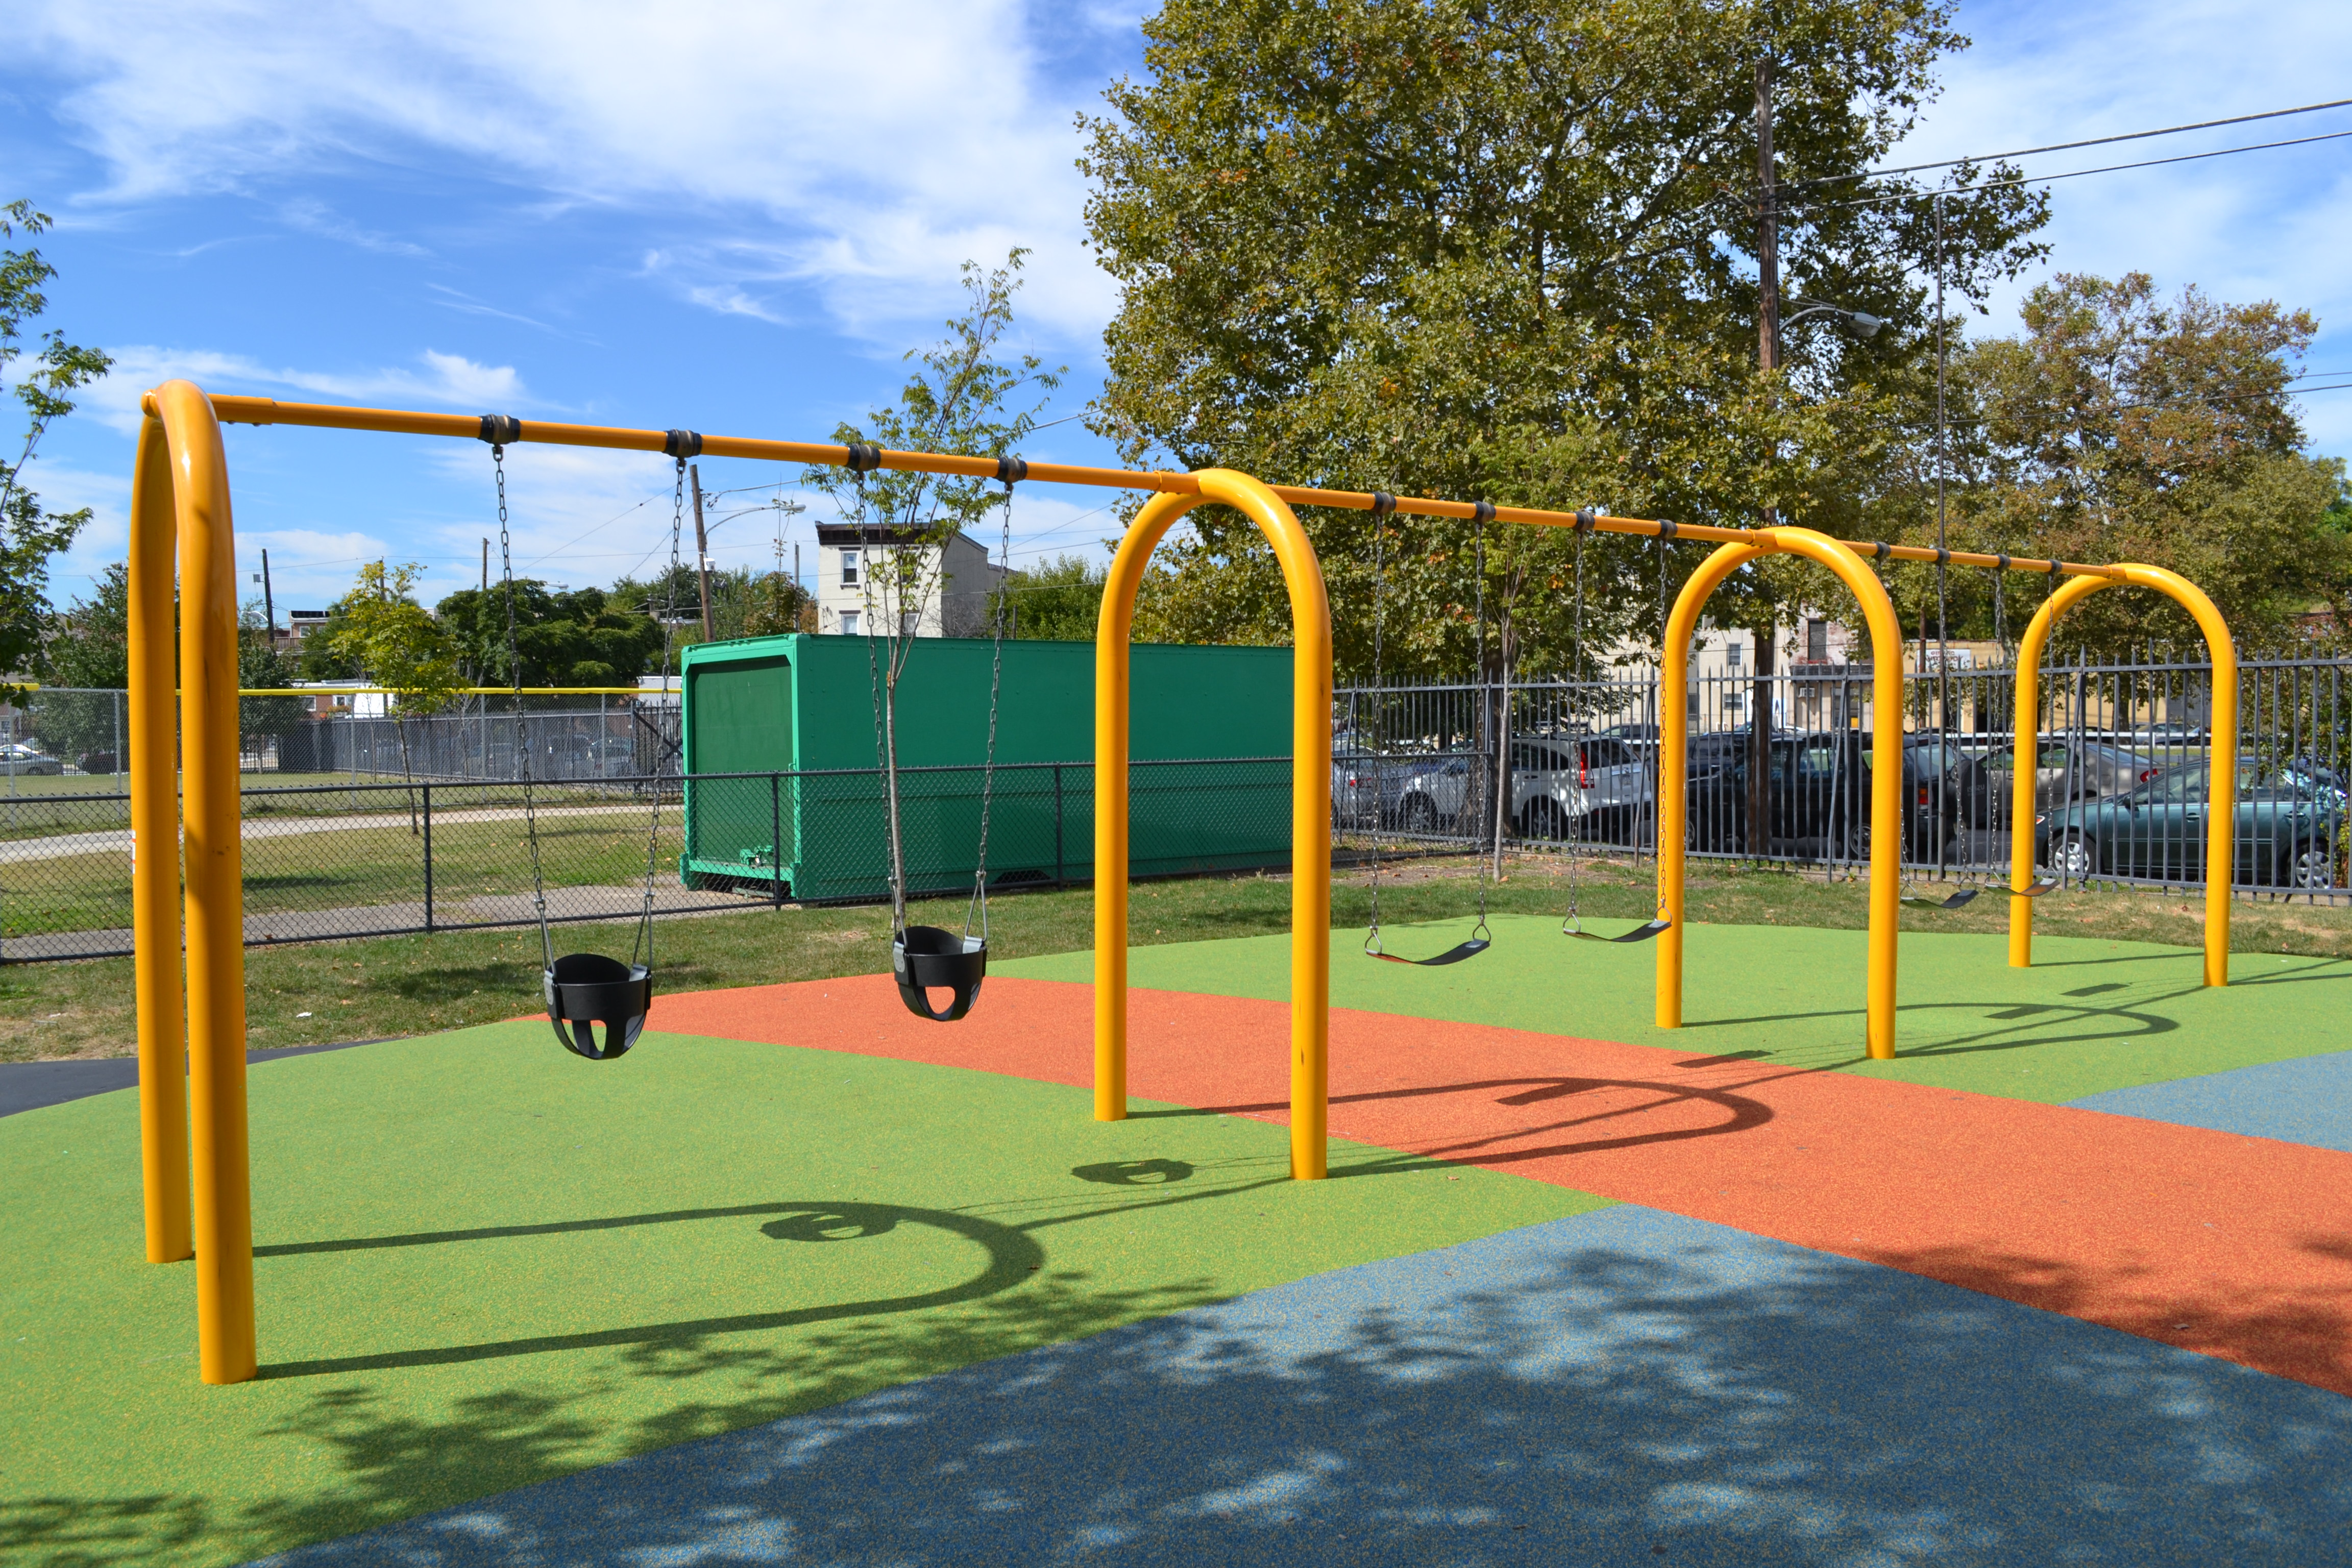 The swings and colorful, bouncy play surface at the upgraded Francisville Playground